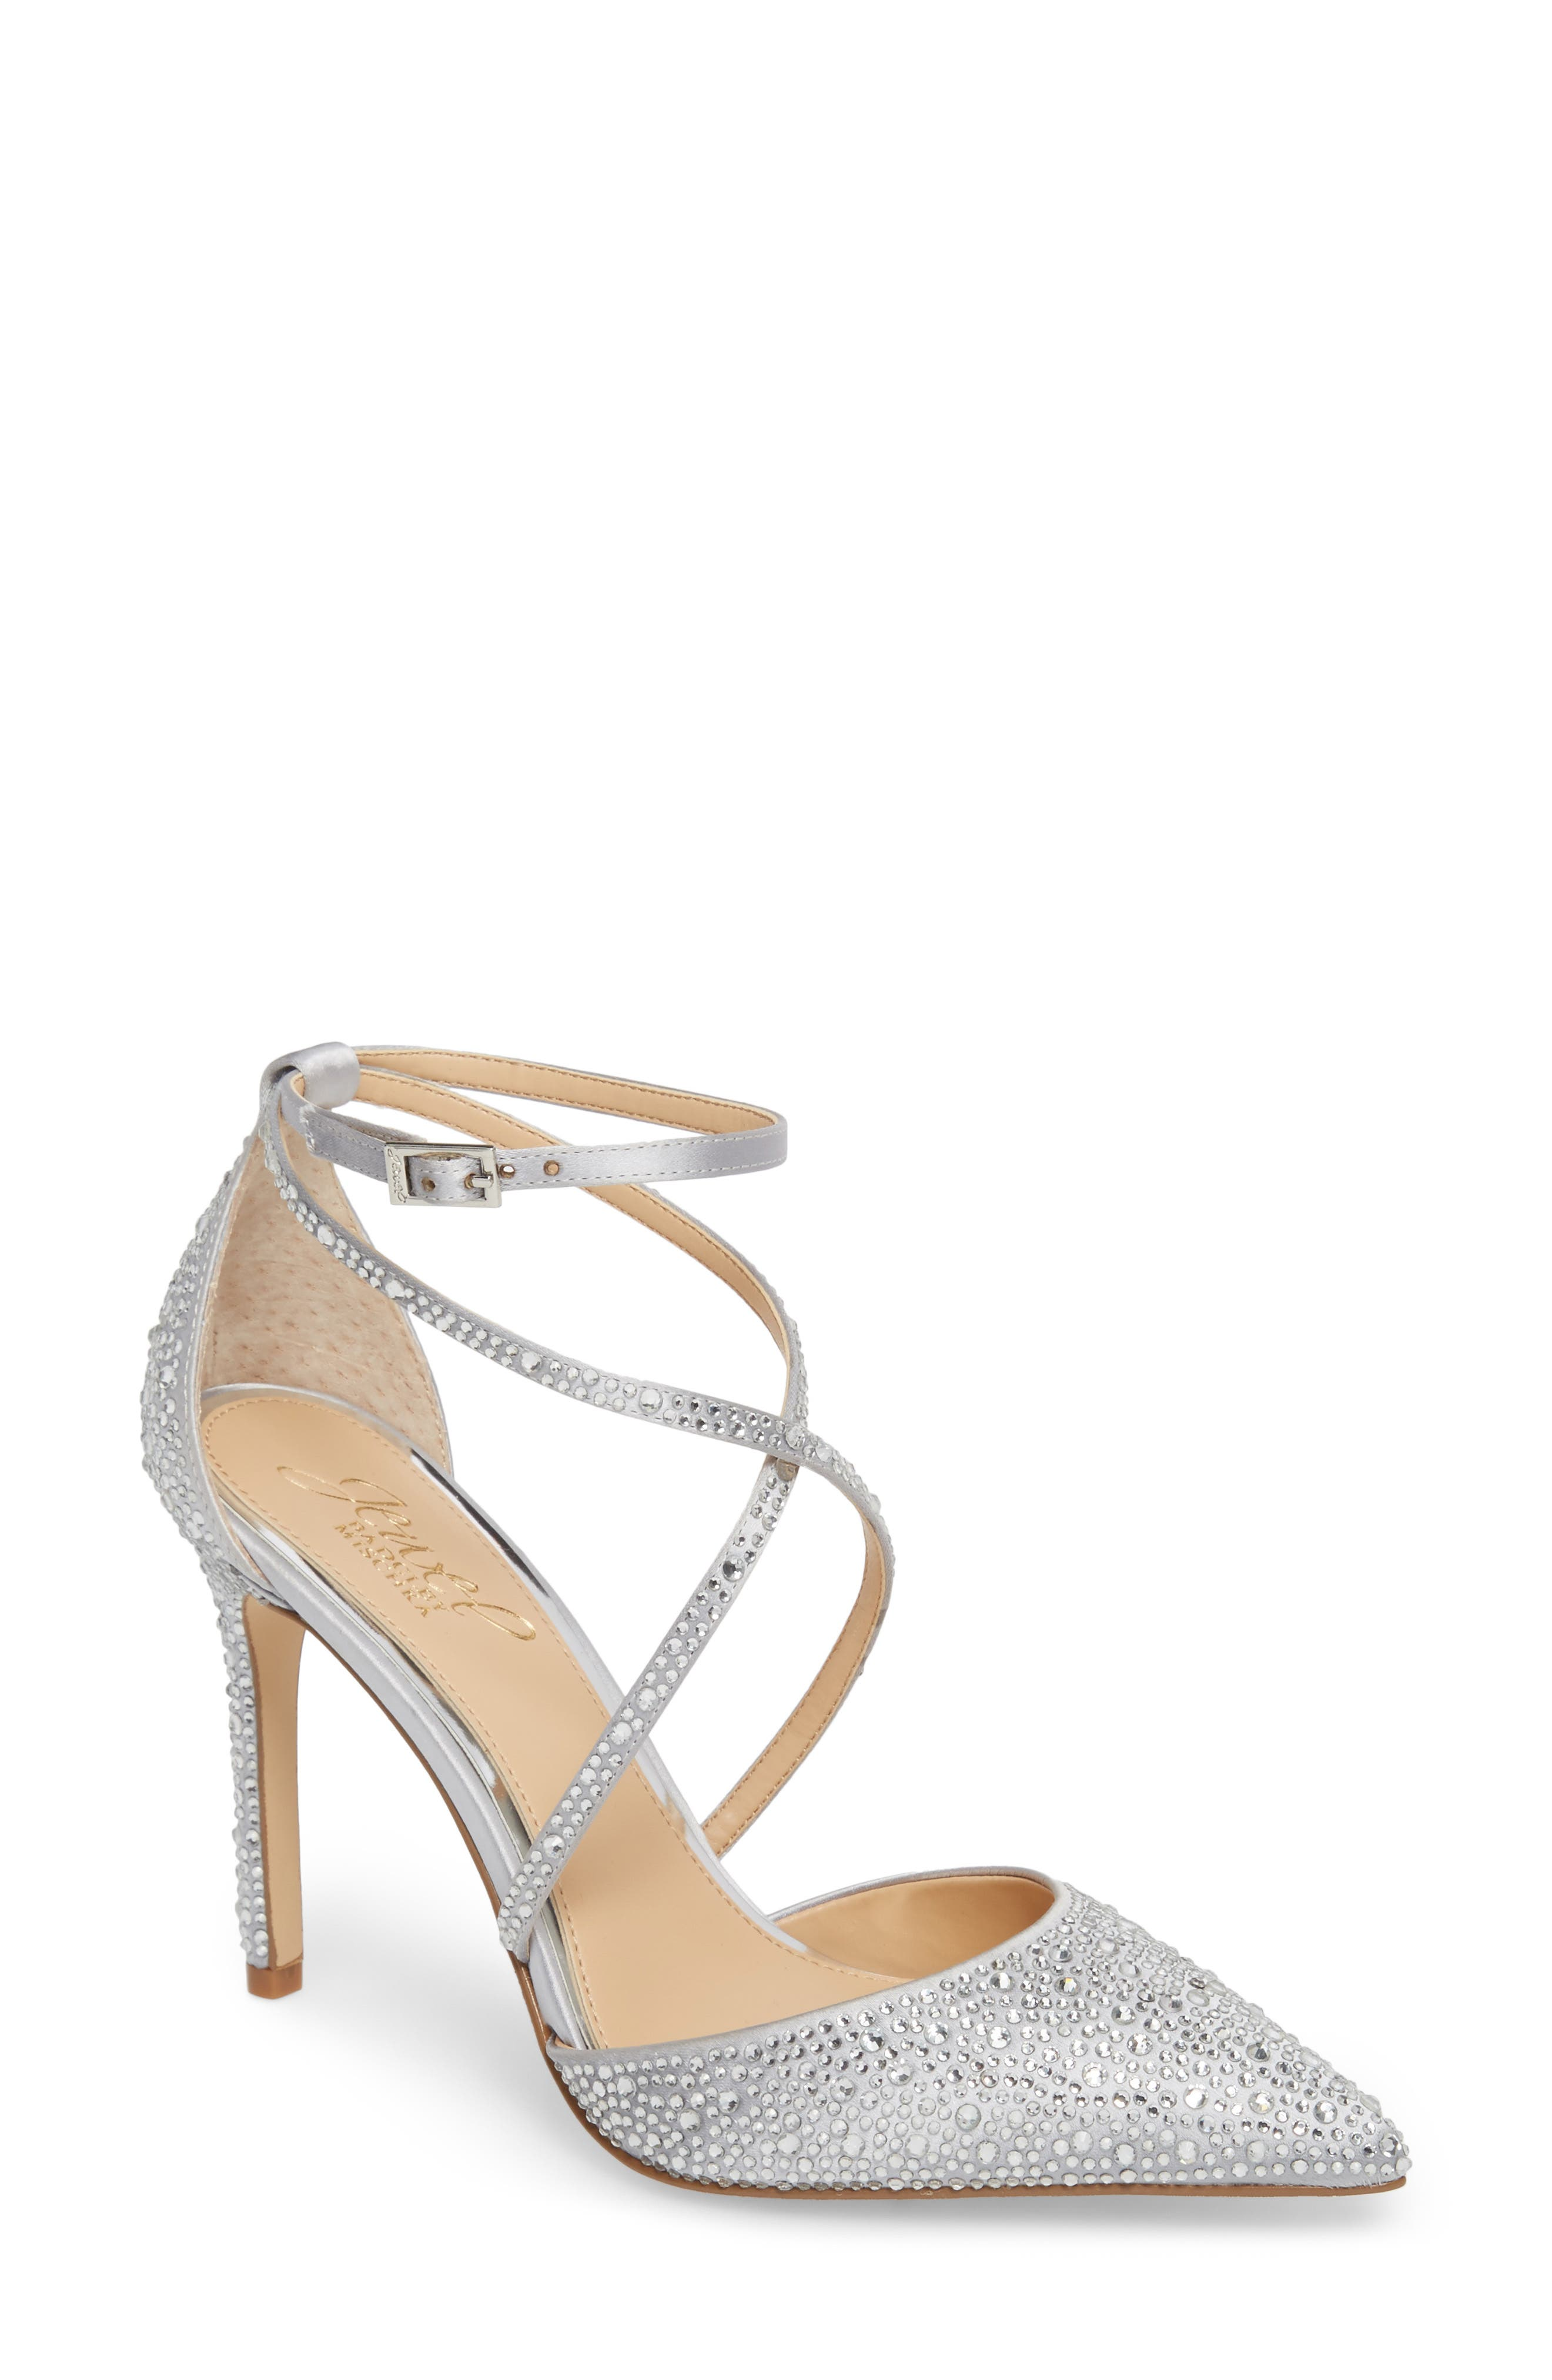 Jewel Badgley Mischka Tanya Embellished Pointy Toe Pump (Women)